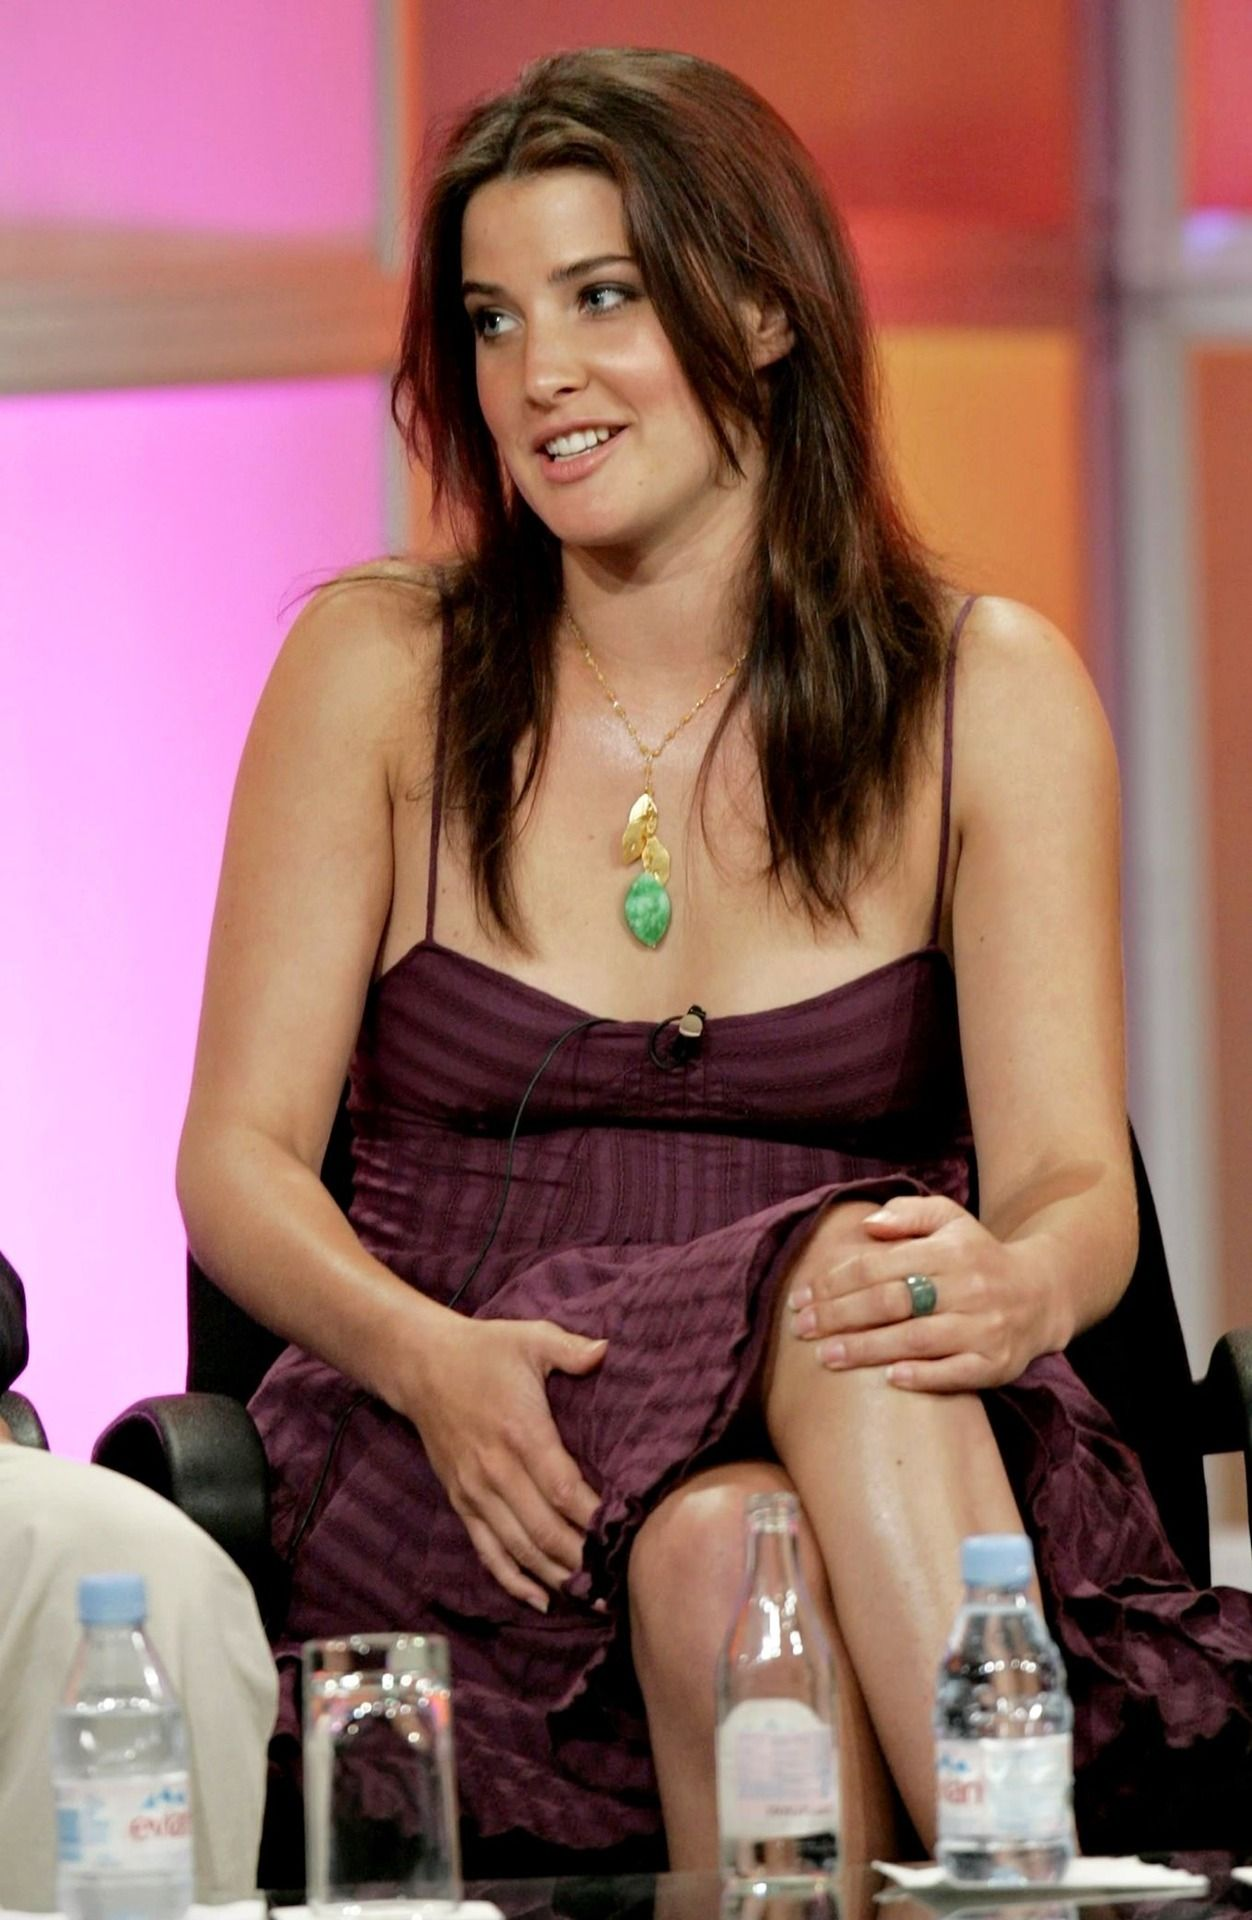 Young Cobie Smulders nude (97 photos), Hot